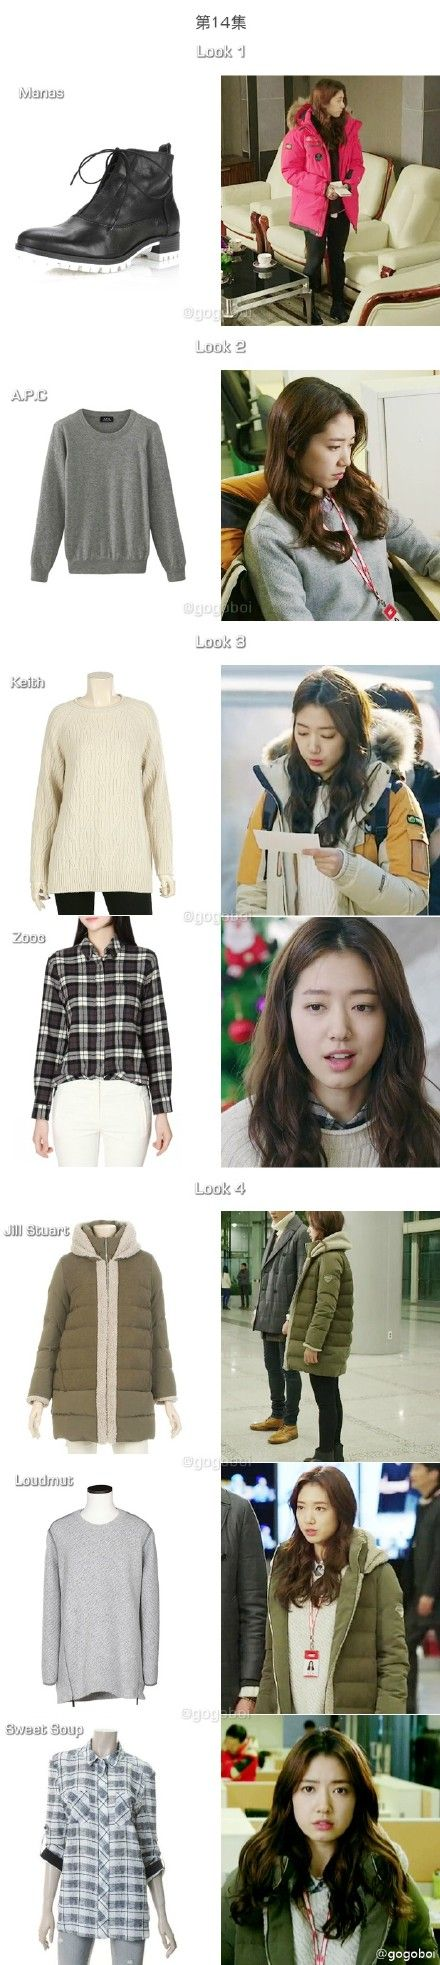 17 best kdrama outfits images on Pinterest | Korean fashion Inspired outfits and K fashion